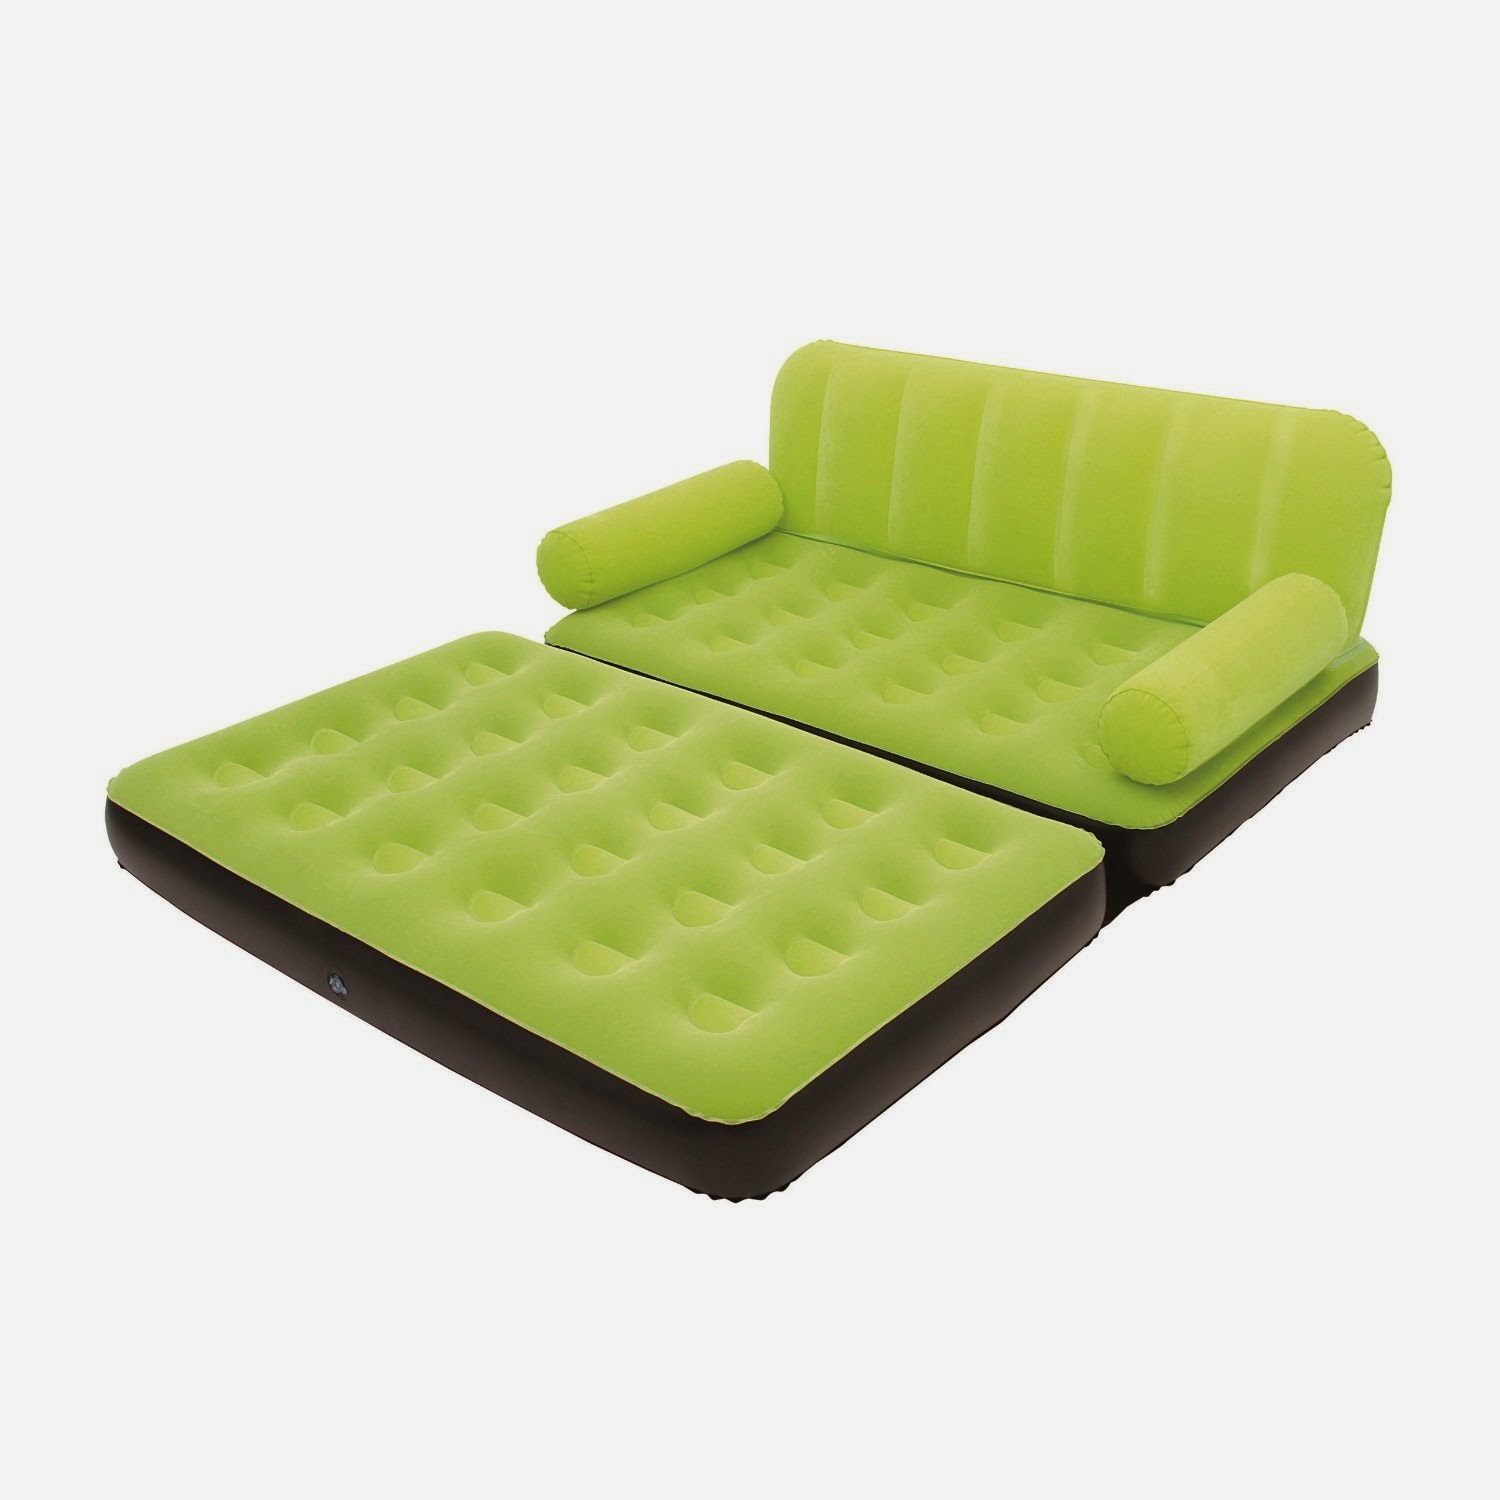 inflatable couch inflatable couch bed : inflatable couch bed from 101inflatablecouch.blogspot.com size 1500 x 1500 jpeg 88kB